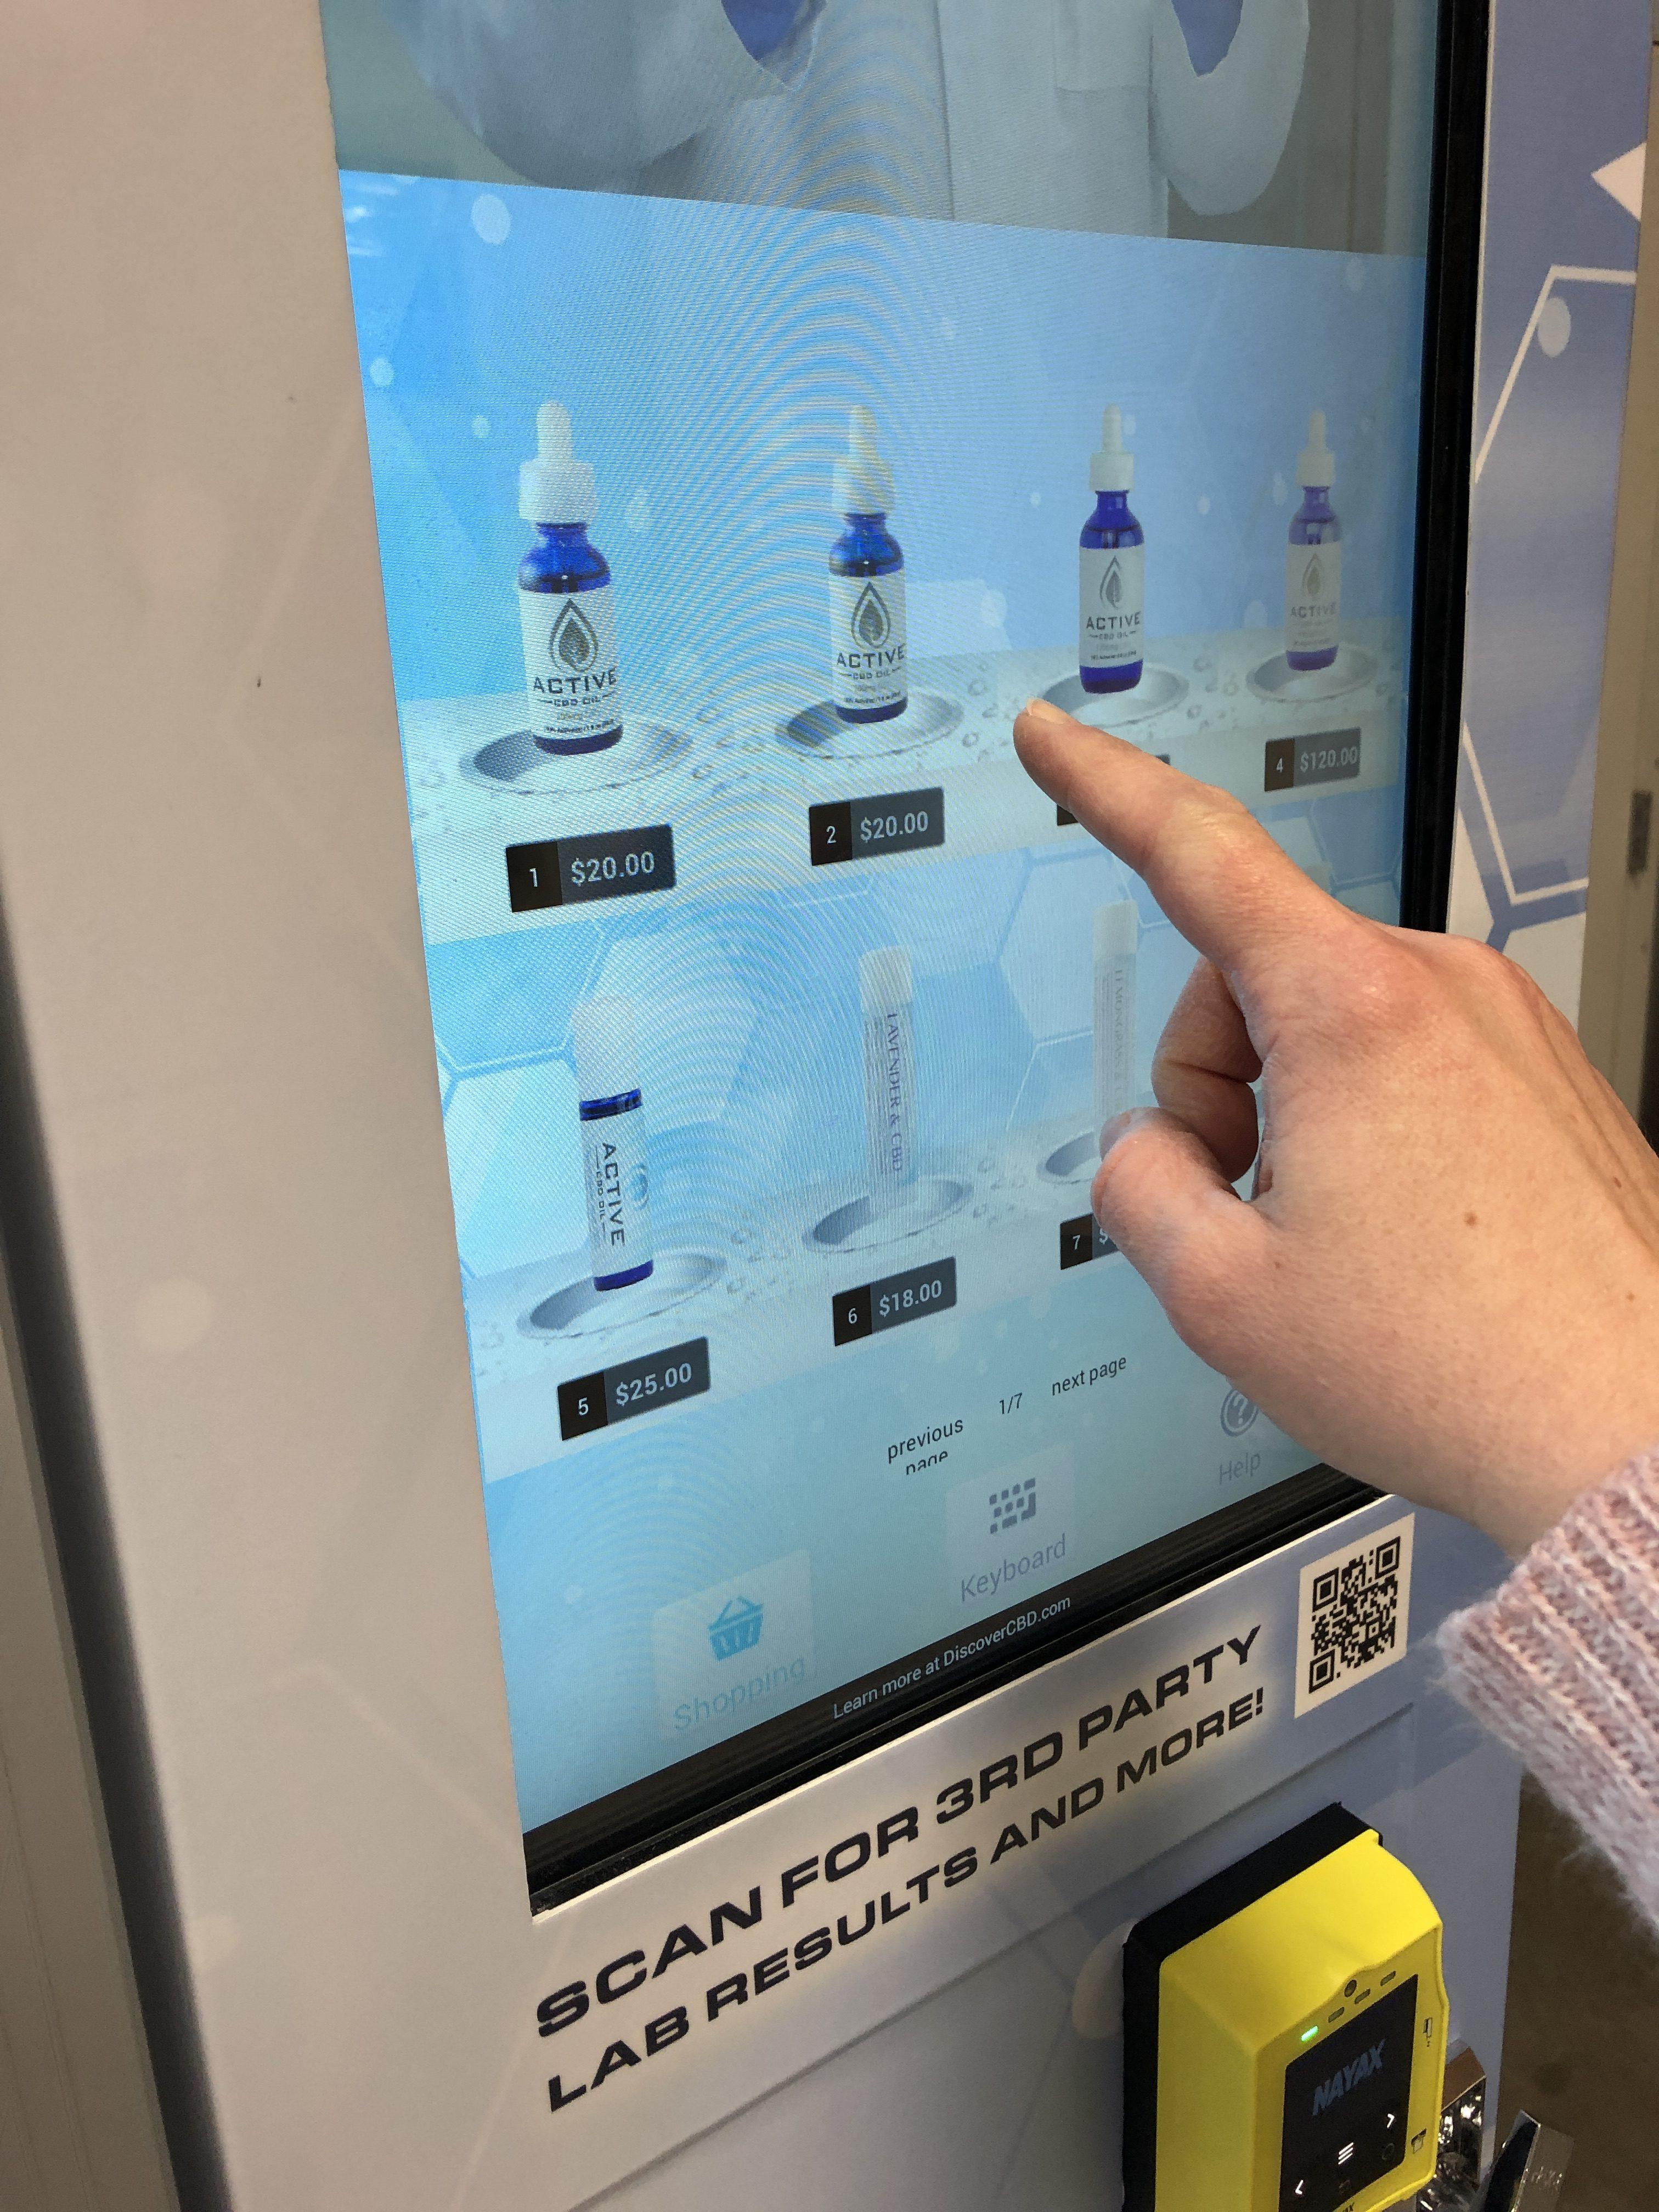 Touchscreen Technology Coming to Vending Machines